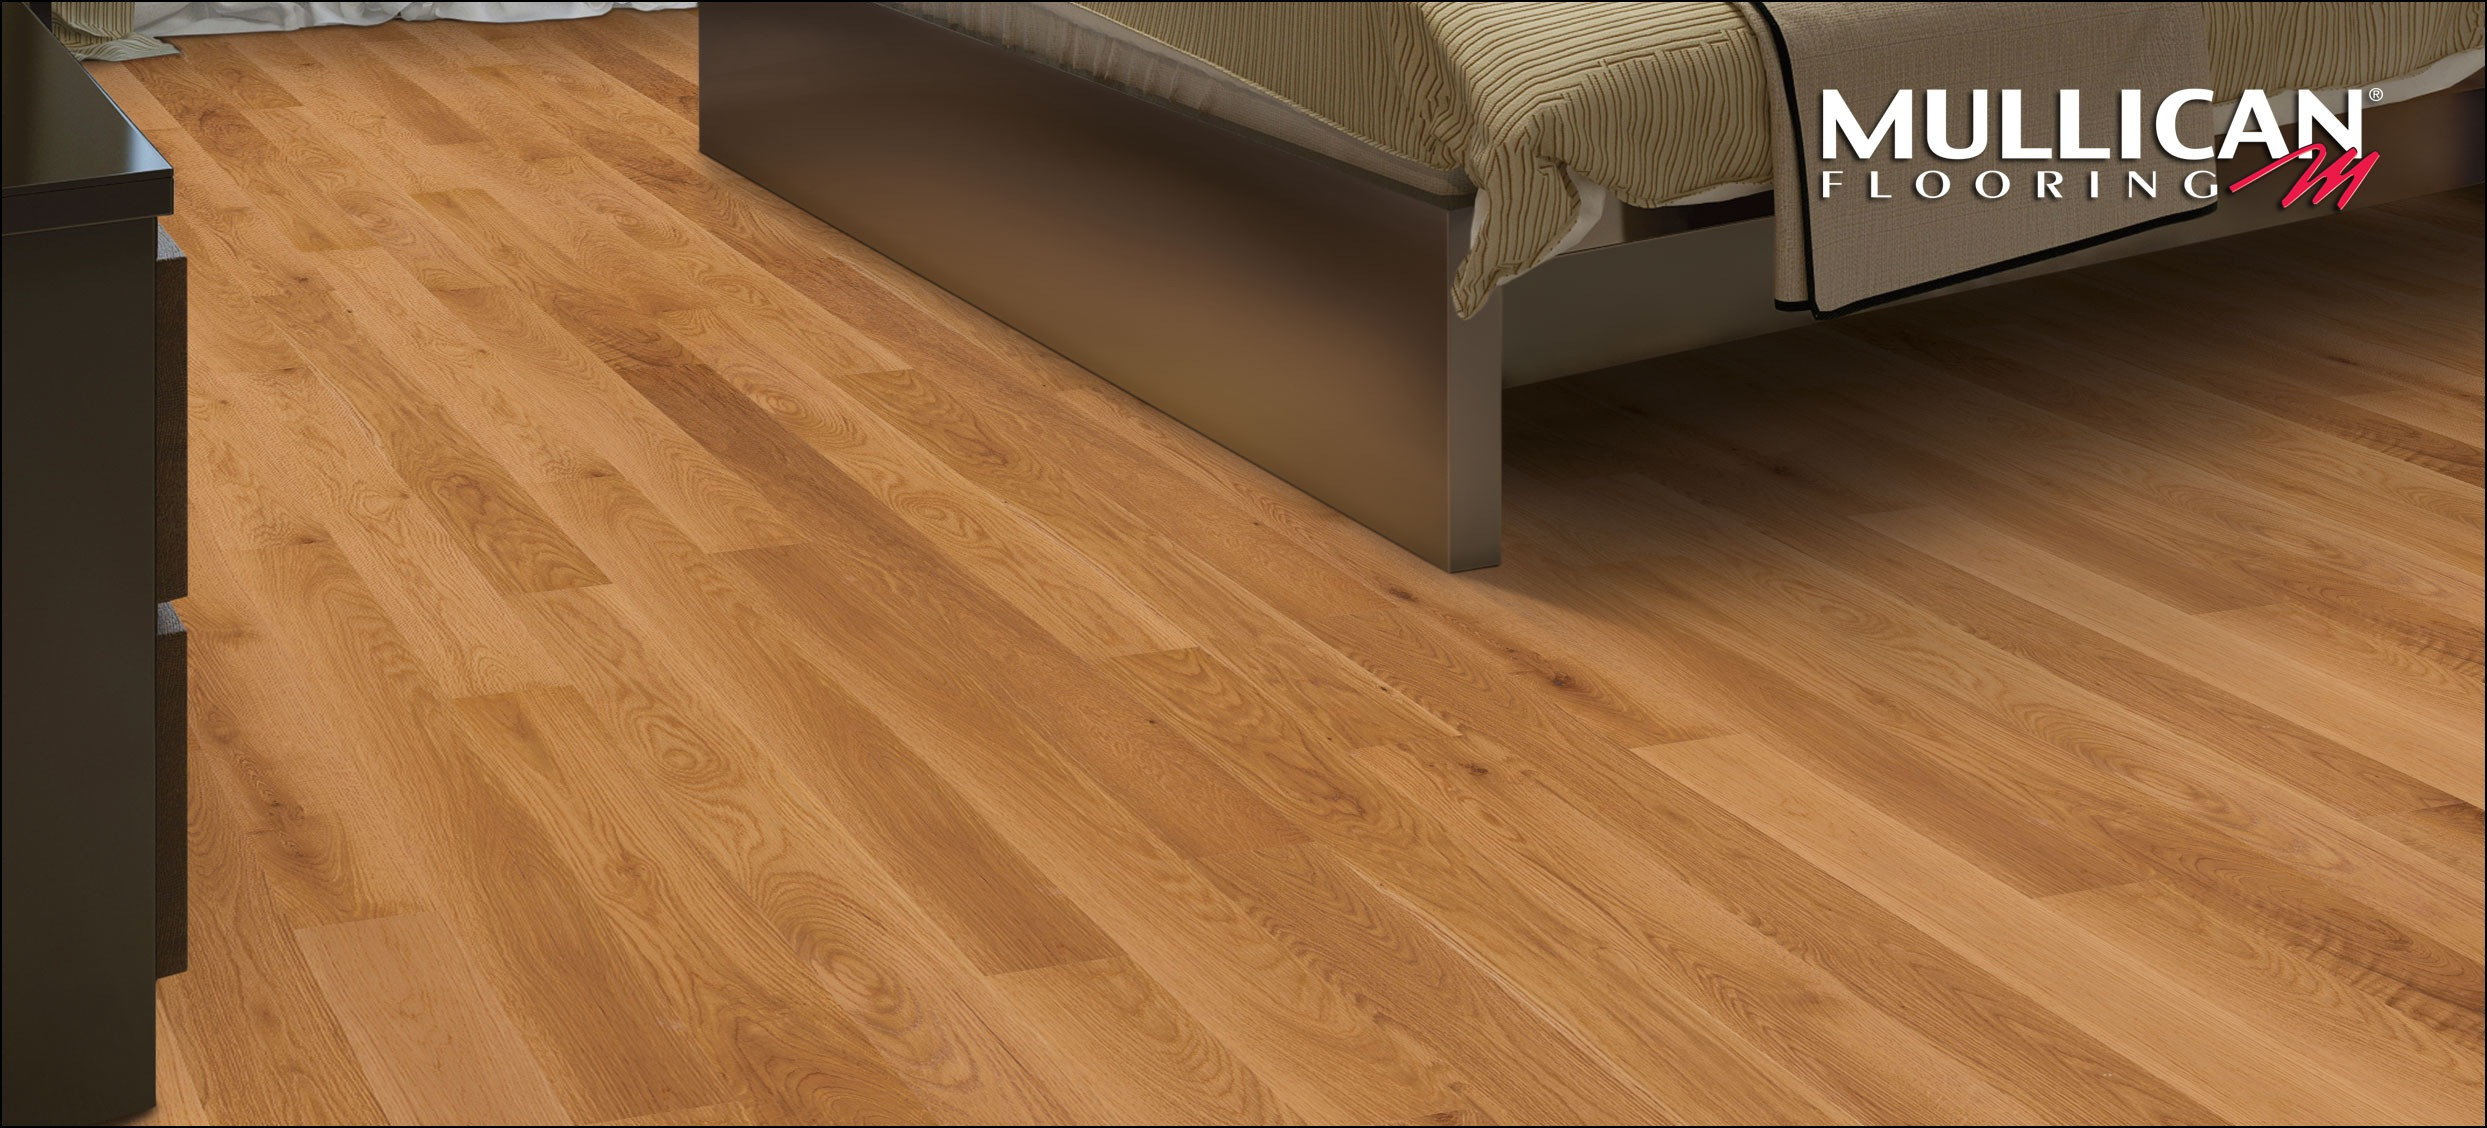 cost of refinishing hardwood floors toronto of hardwood flooring suppliers france flooring ideas intended for hardwood flooring installation san diego collection mullican flooring home of hardwood flooring installation san diego